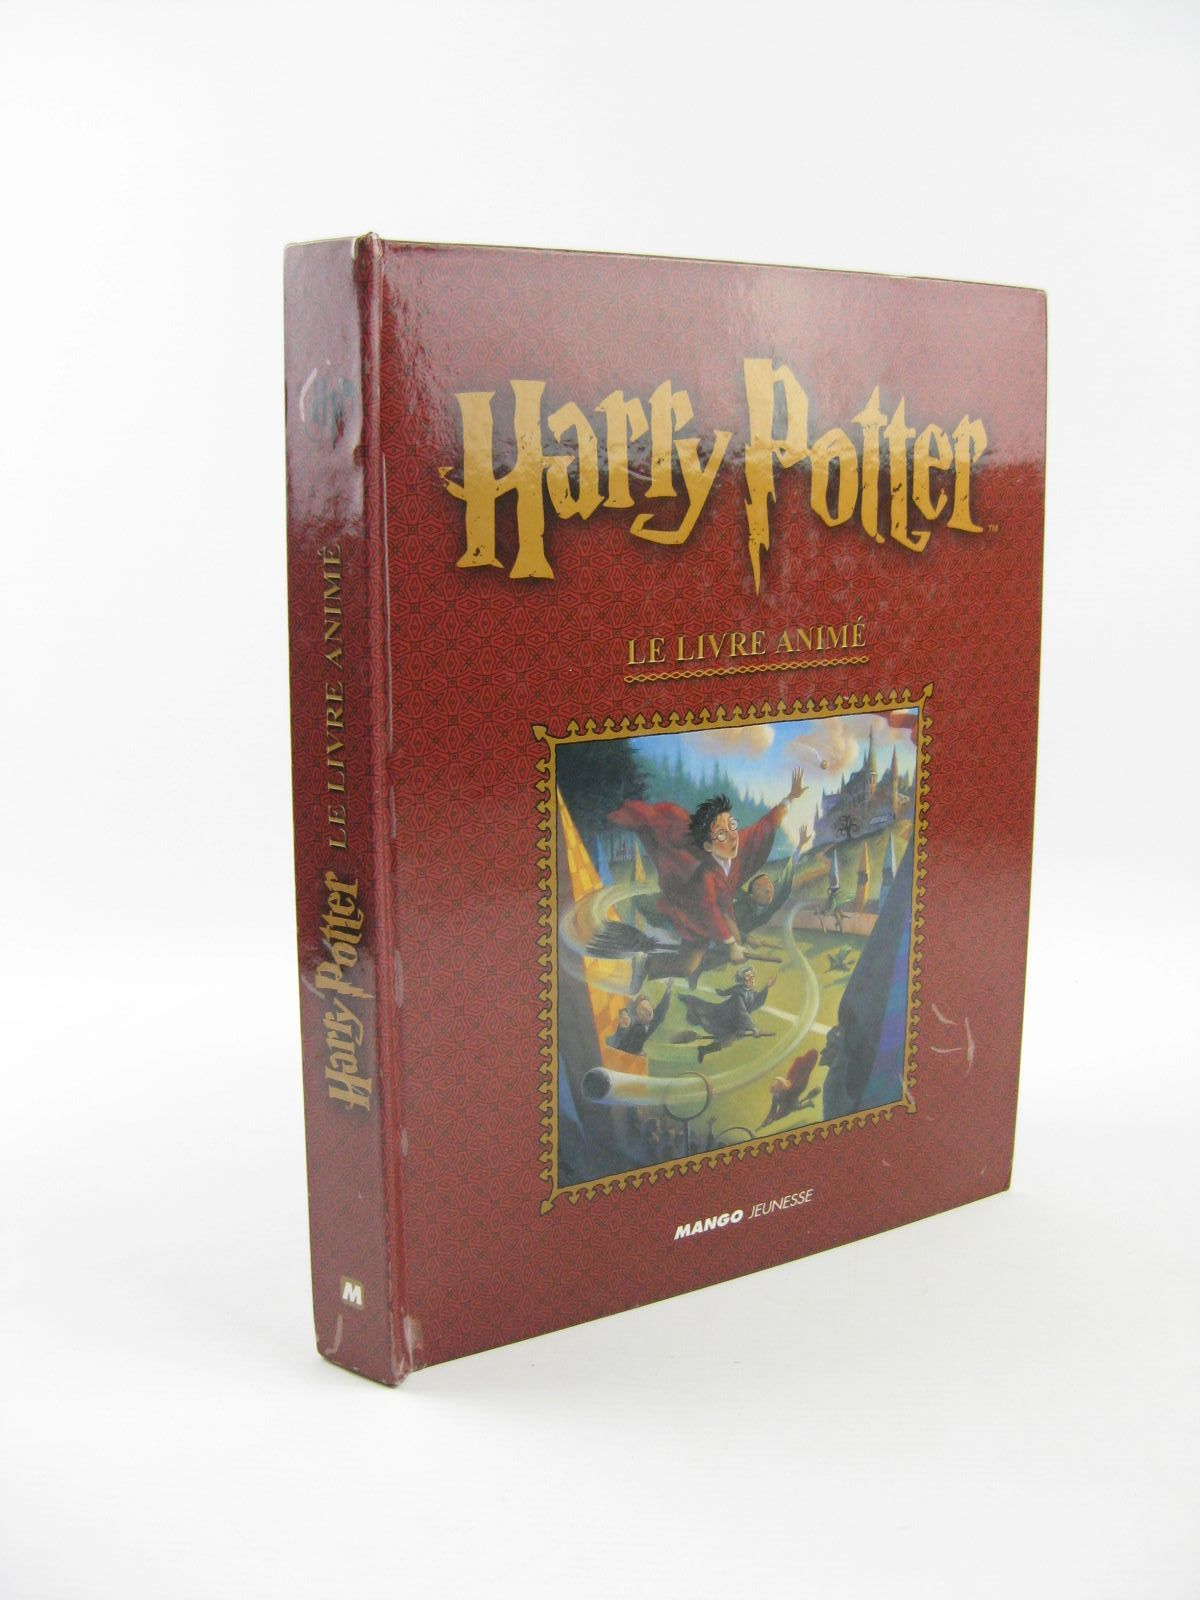 Harry Potter Le Livre Anime Stock Code 1401816 Stella